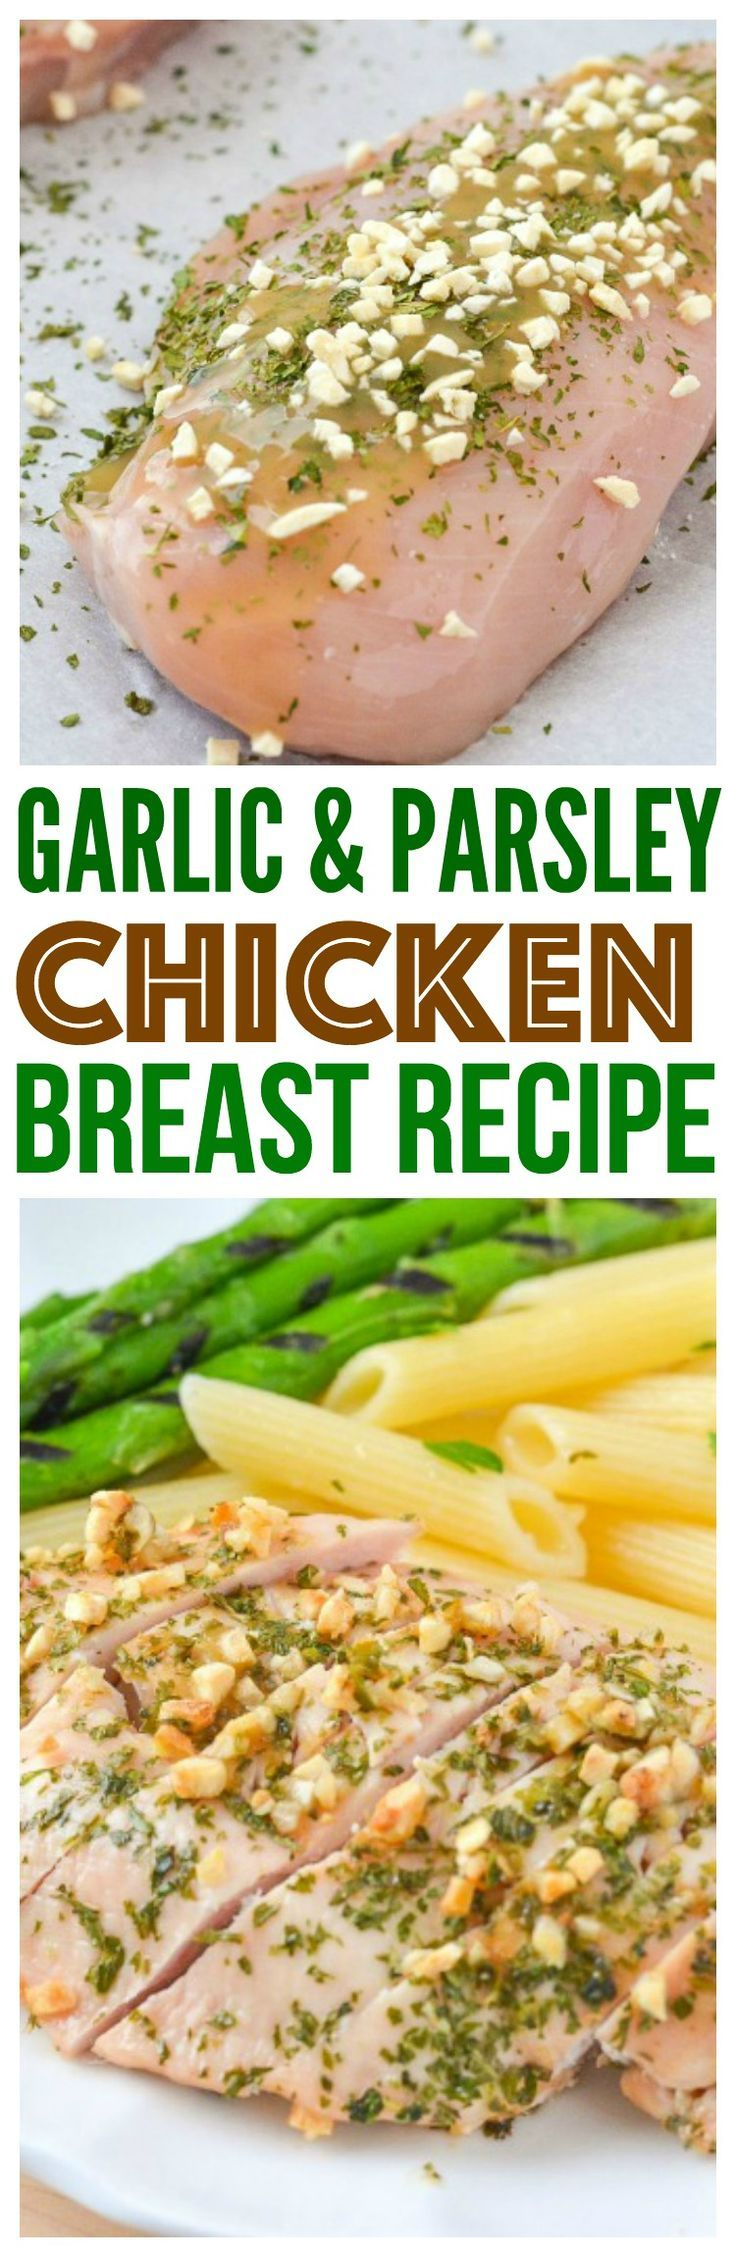 tender chicken breast recipes healthy easy baked in the oven healthy chicken dinner with garlic parsley pasta and seasoned grilled asparagus via @CourtneysSweets